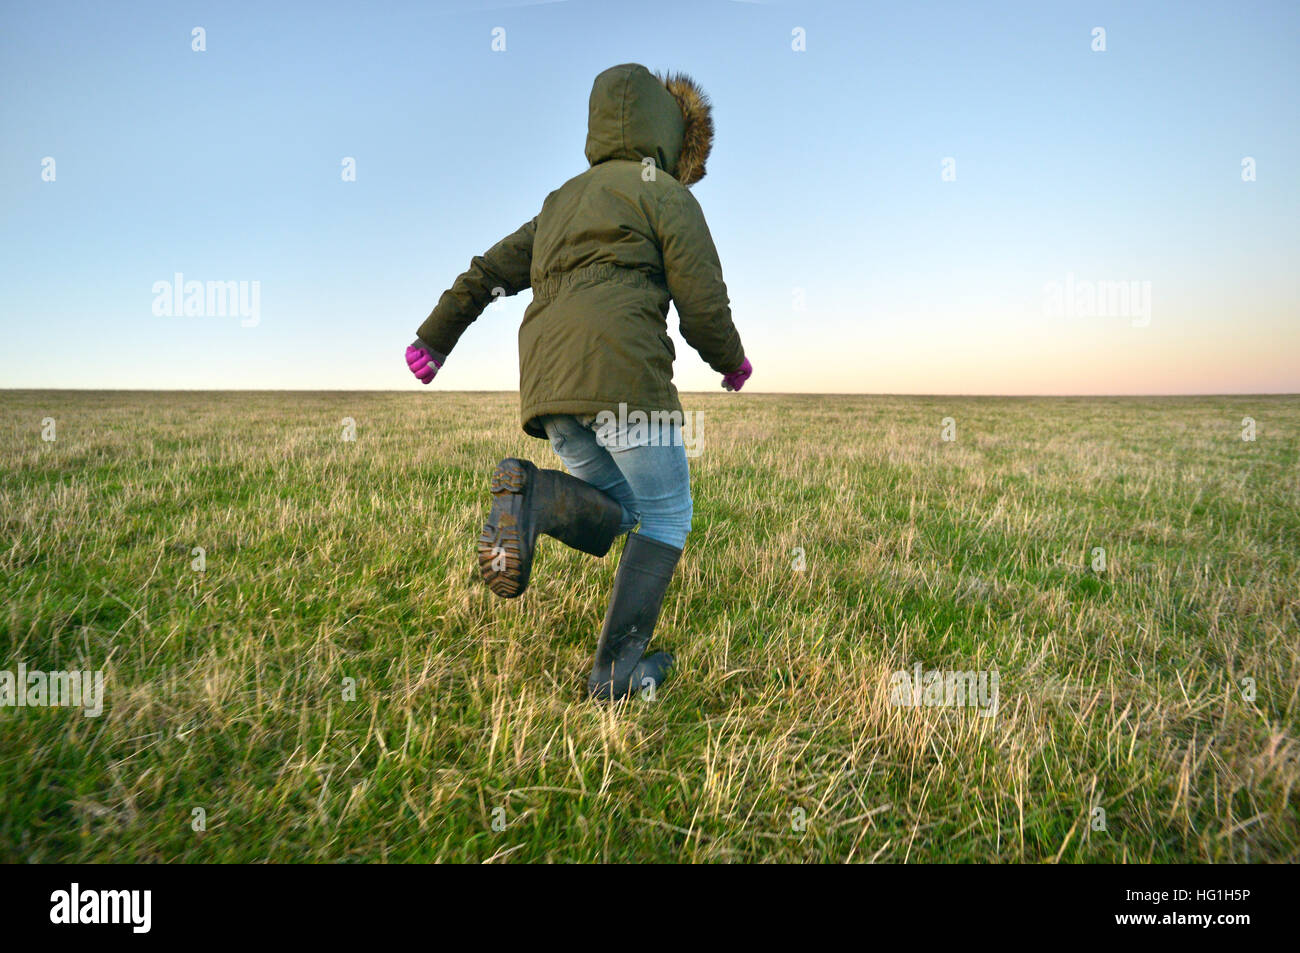 Child in welly boots running on a grassy hill - Stock Image